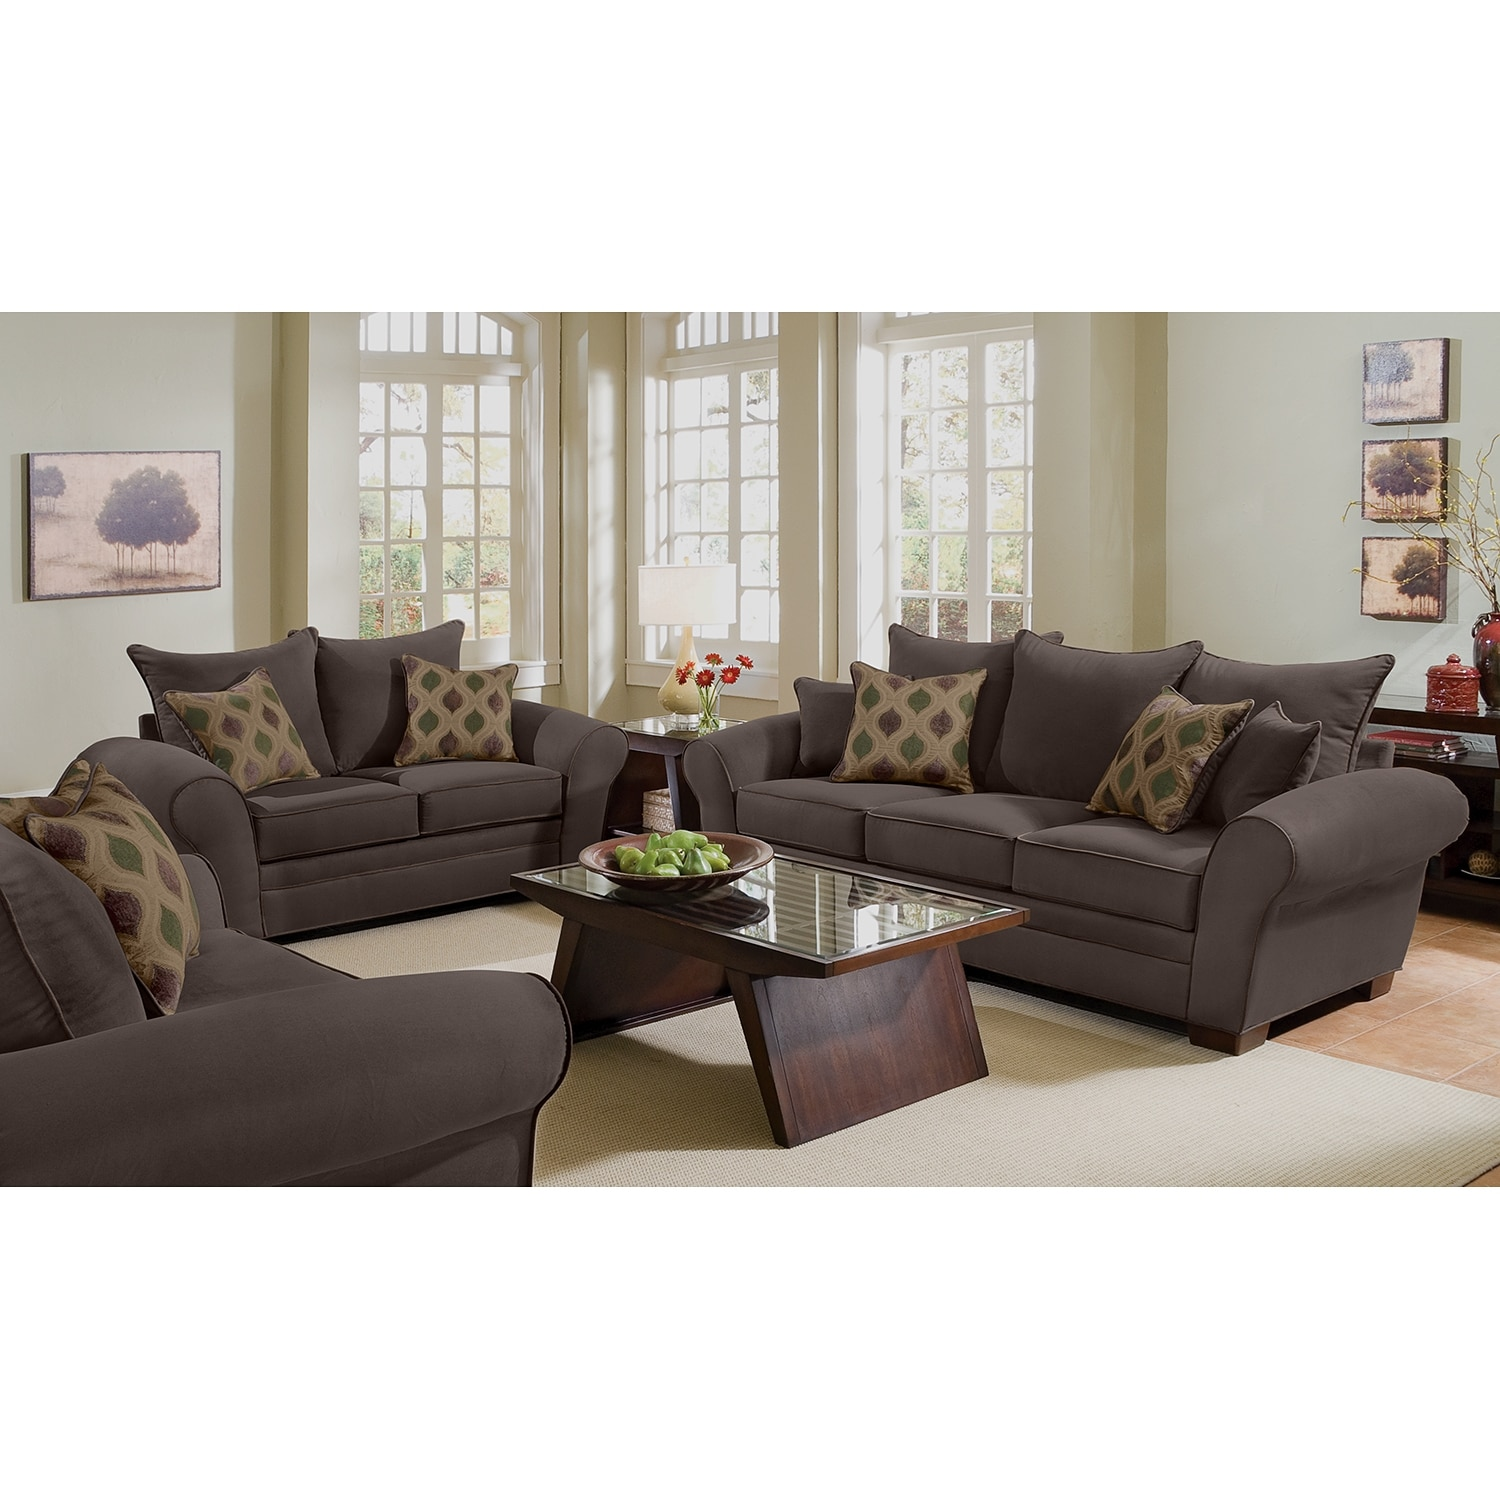 value city furniture living room sets value city furniture leather living room sets 23987